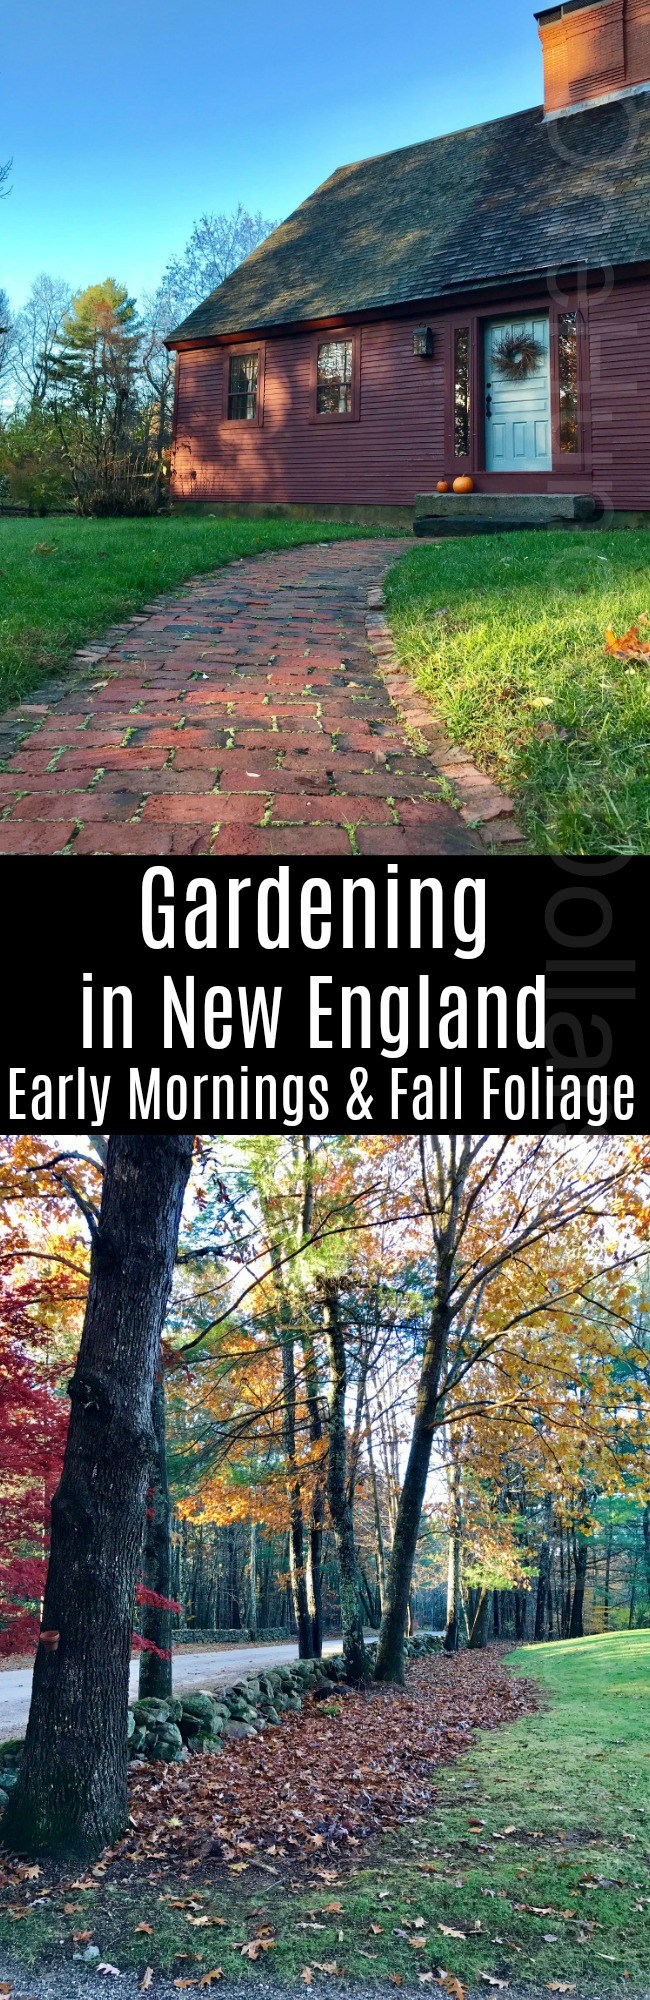 Gardening in New England – Early Mornings and Fall Foliage